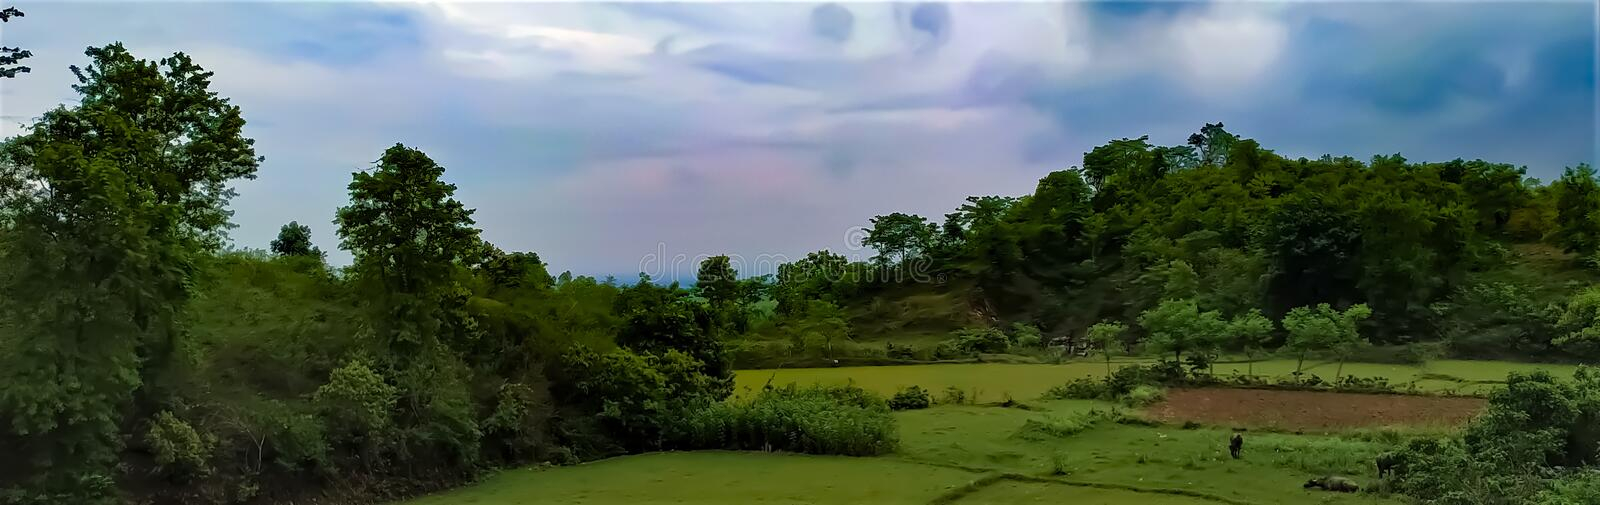 A beautiful landscape view of Indian rural area, skyline view with trees, fields and cloud. This is a picture of a beautiful landscape view of Indian rural area royalty free stock images